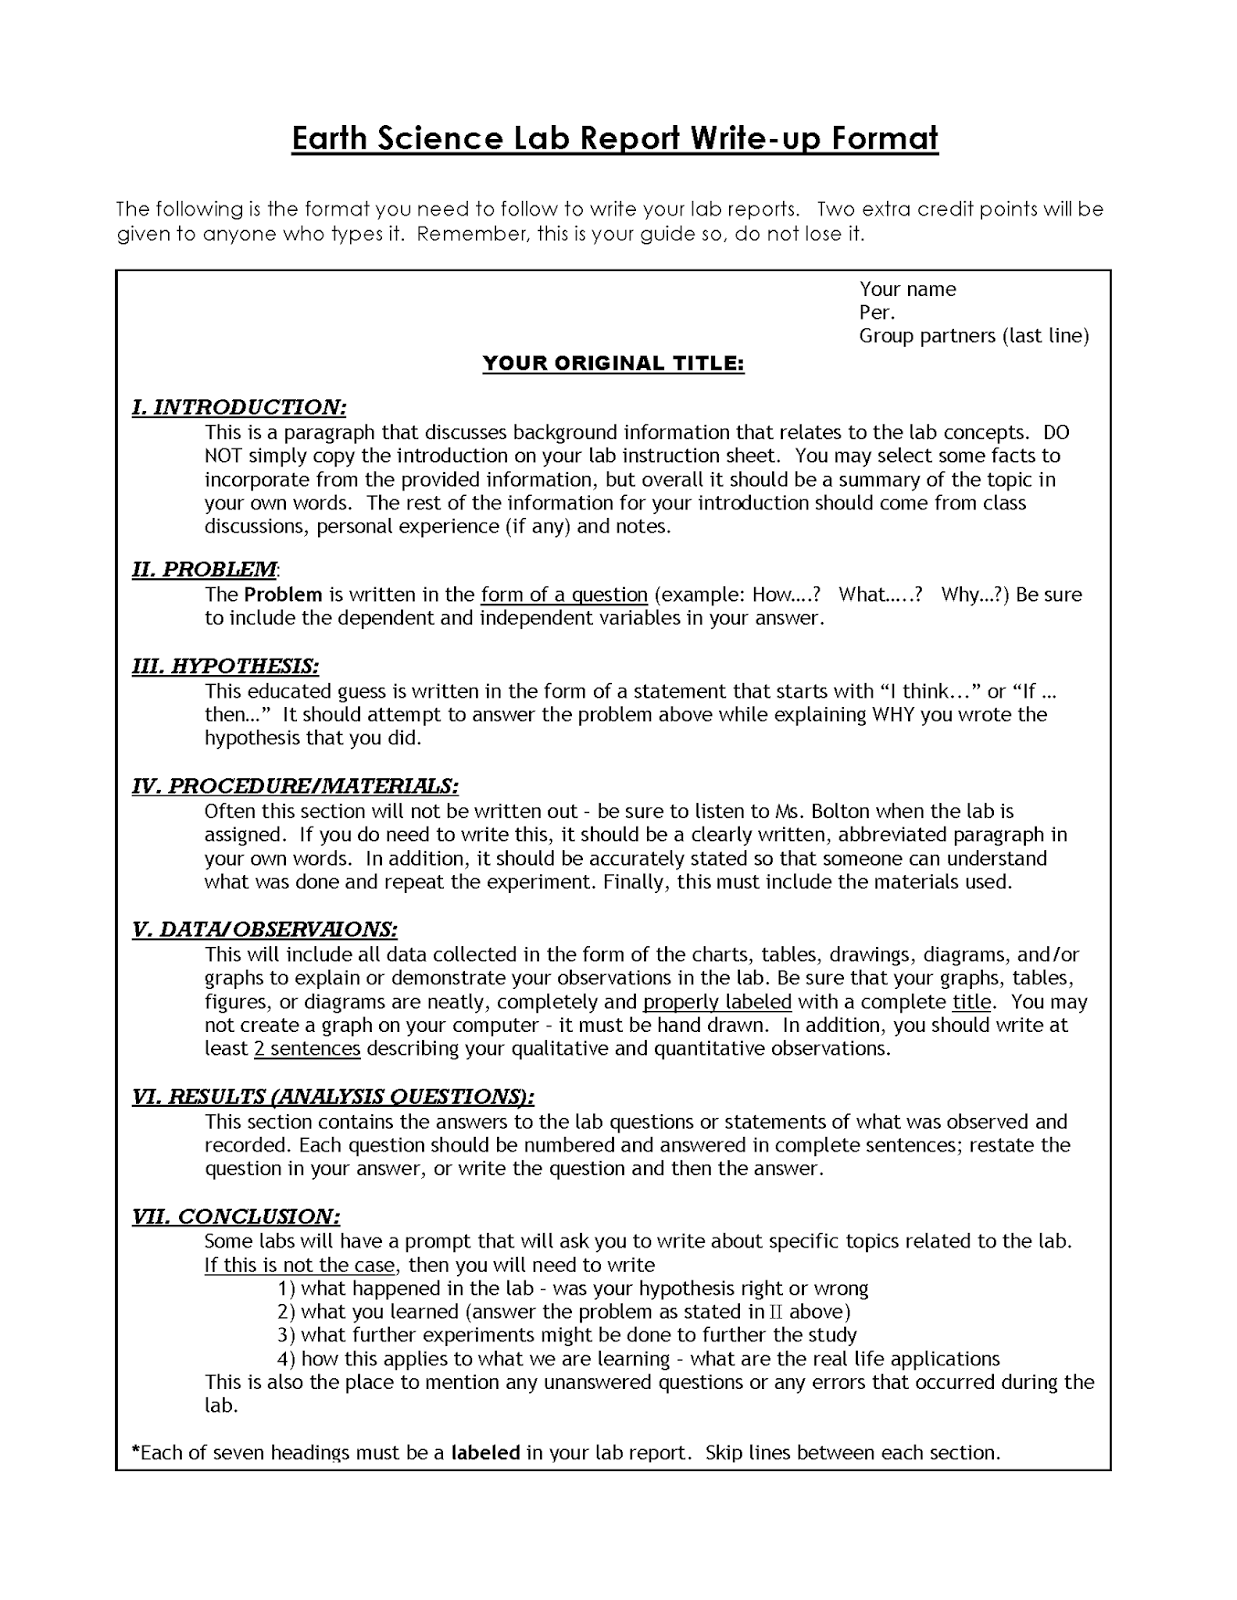 lab report format physics university cover letter examples and lab report format physics university lab report writing best way to write it is to buy